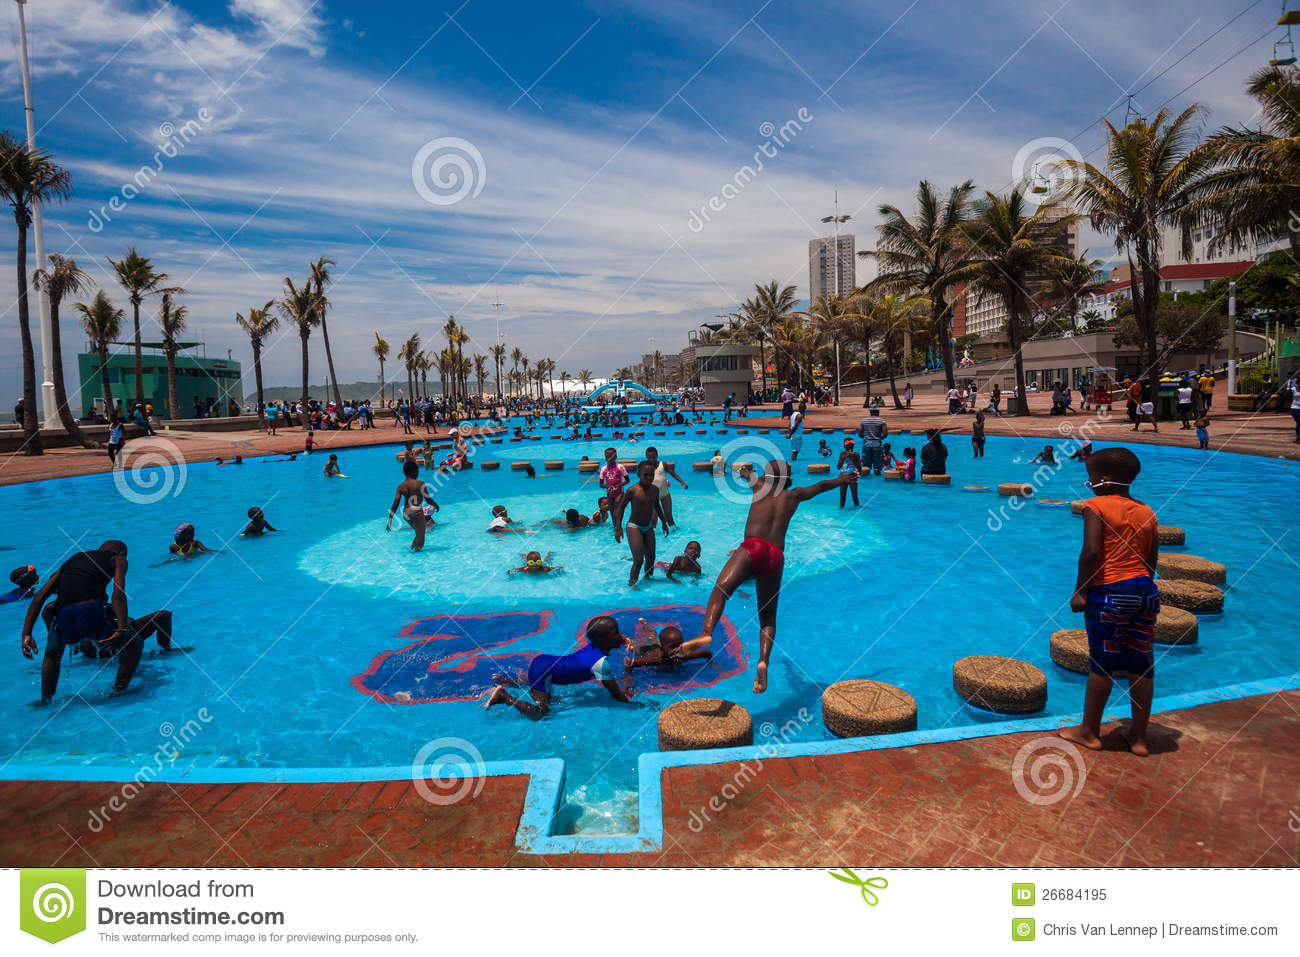 Public swimming pools holidays editorial image image - Public swimming pool design ...